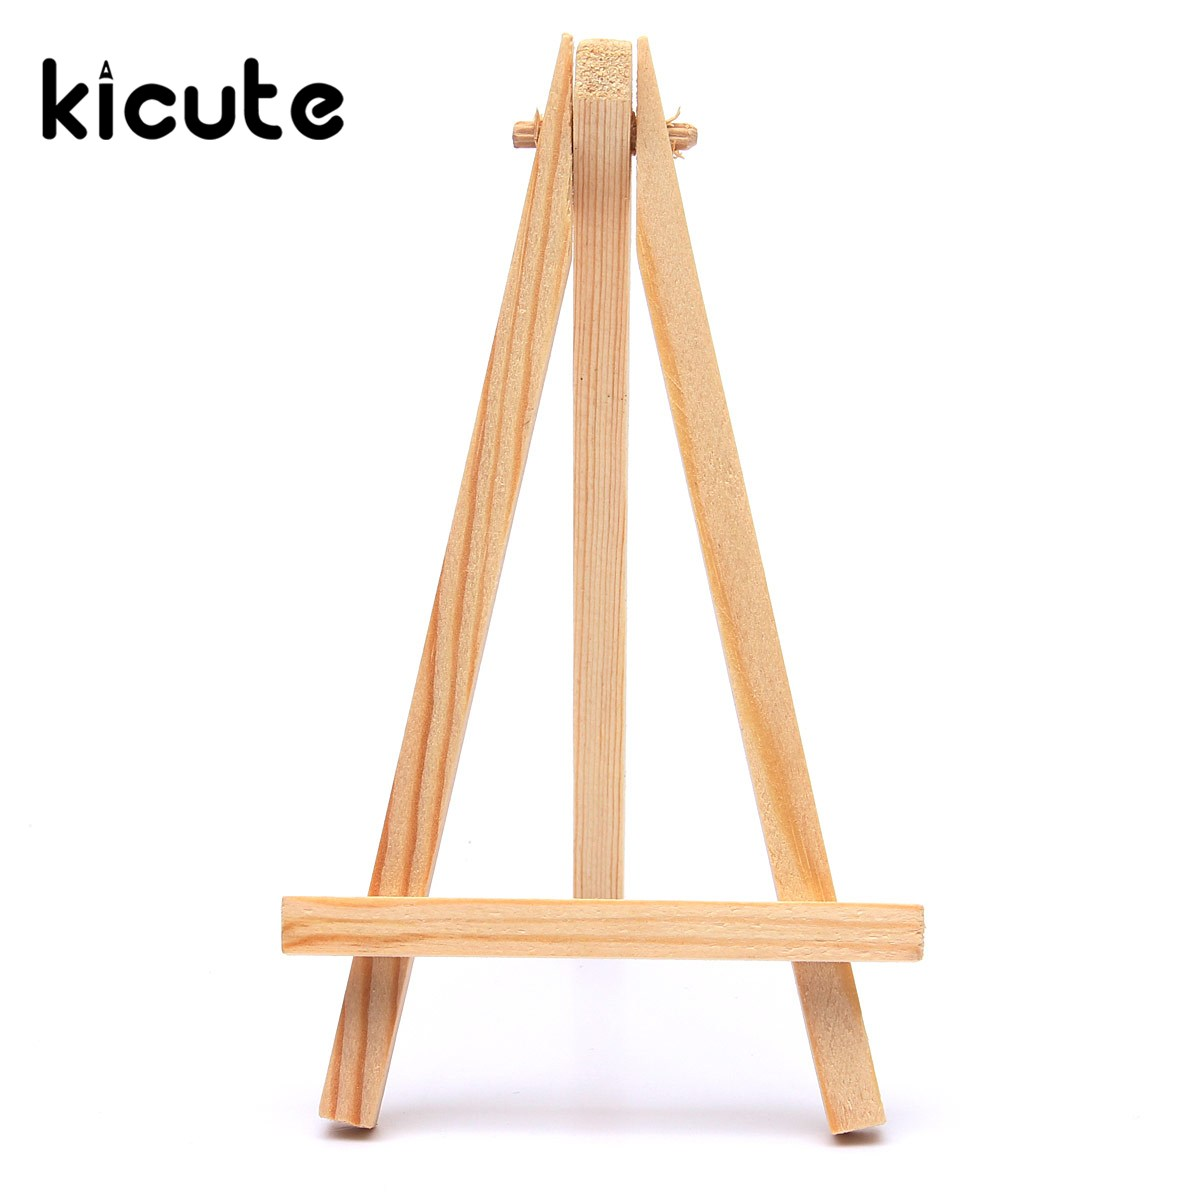 Kicute Wood Artist Easel Wedding Table Number Place Name Card Photos Stand Display Holder DIY Party Table Tools table